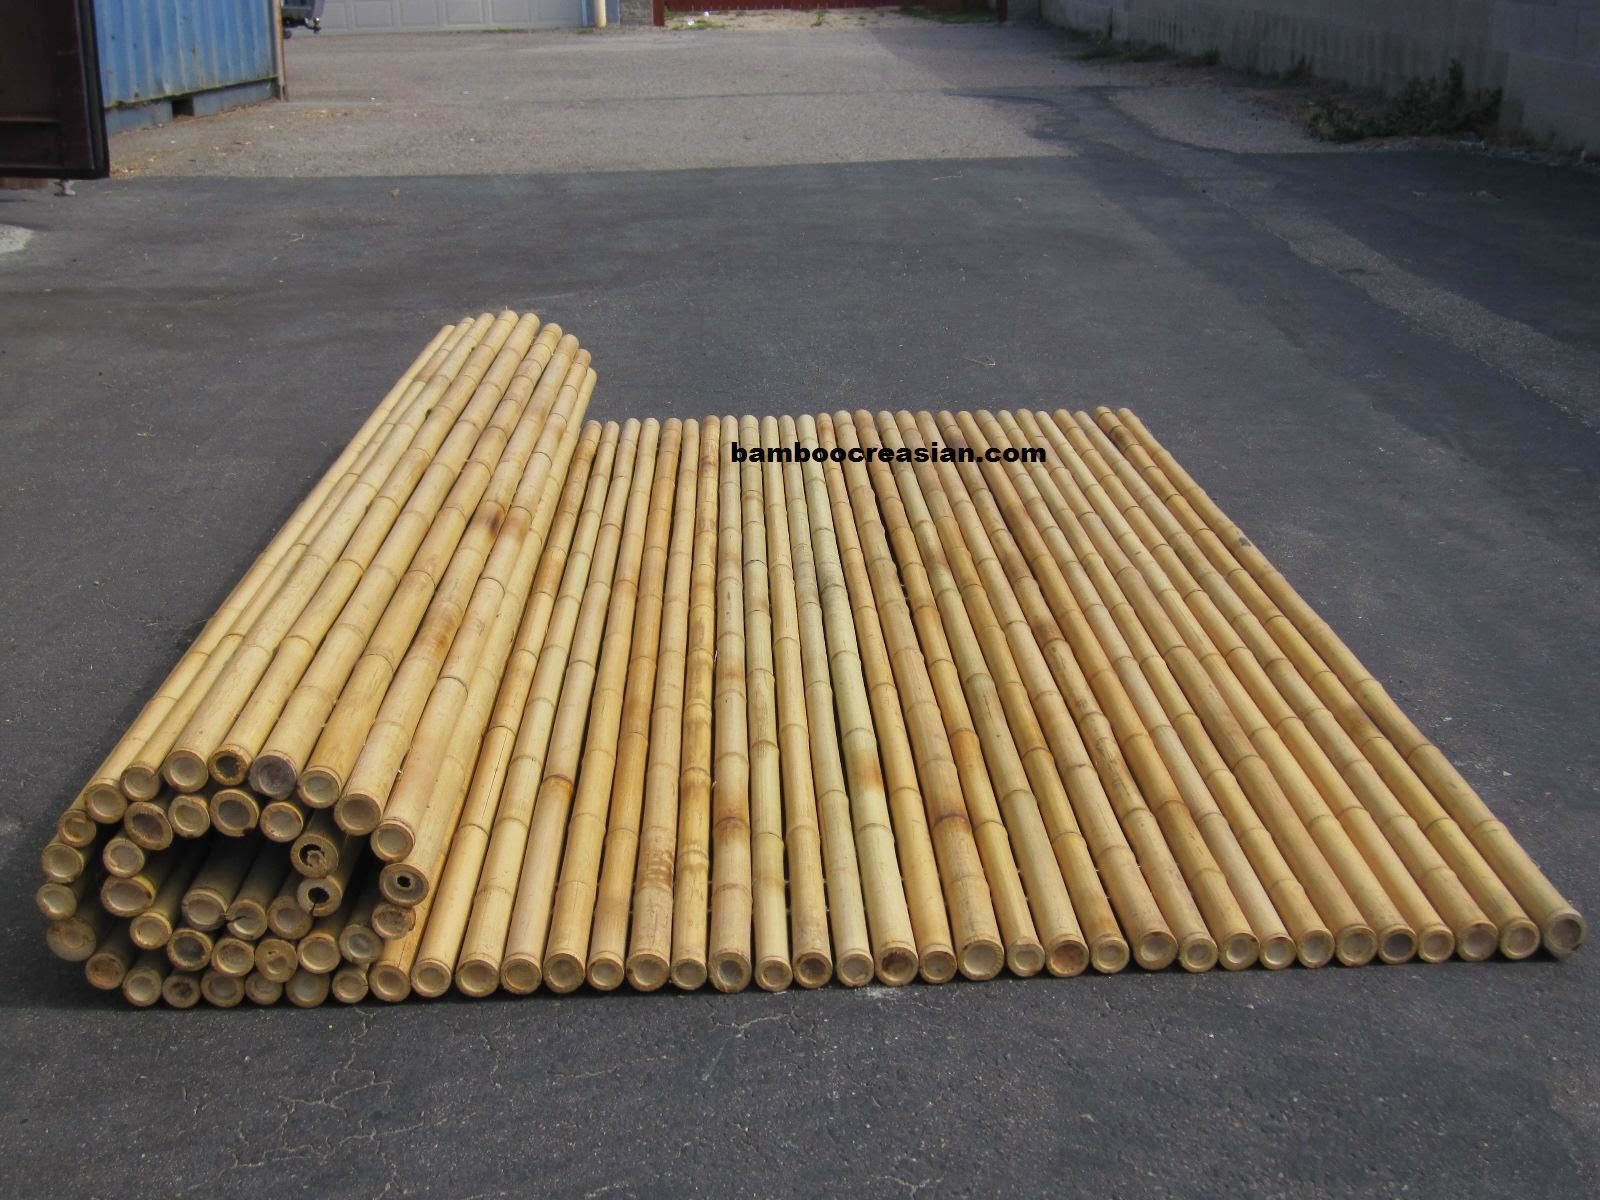 Allbamboo Product4sale Decorative Bamboo Fencing Wainscot